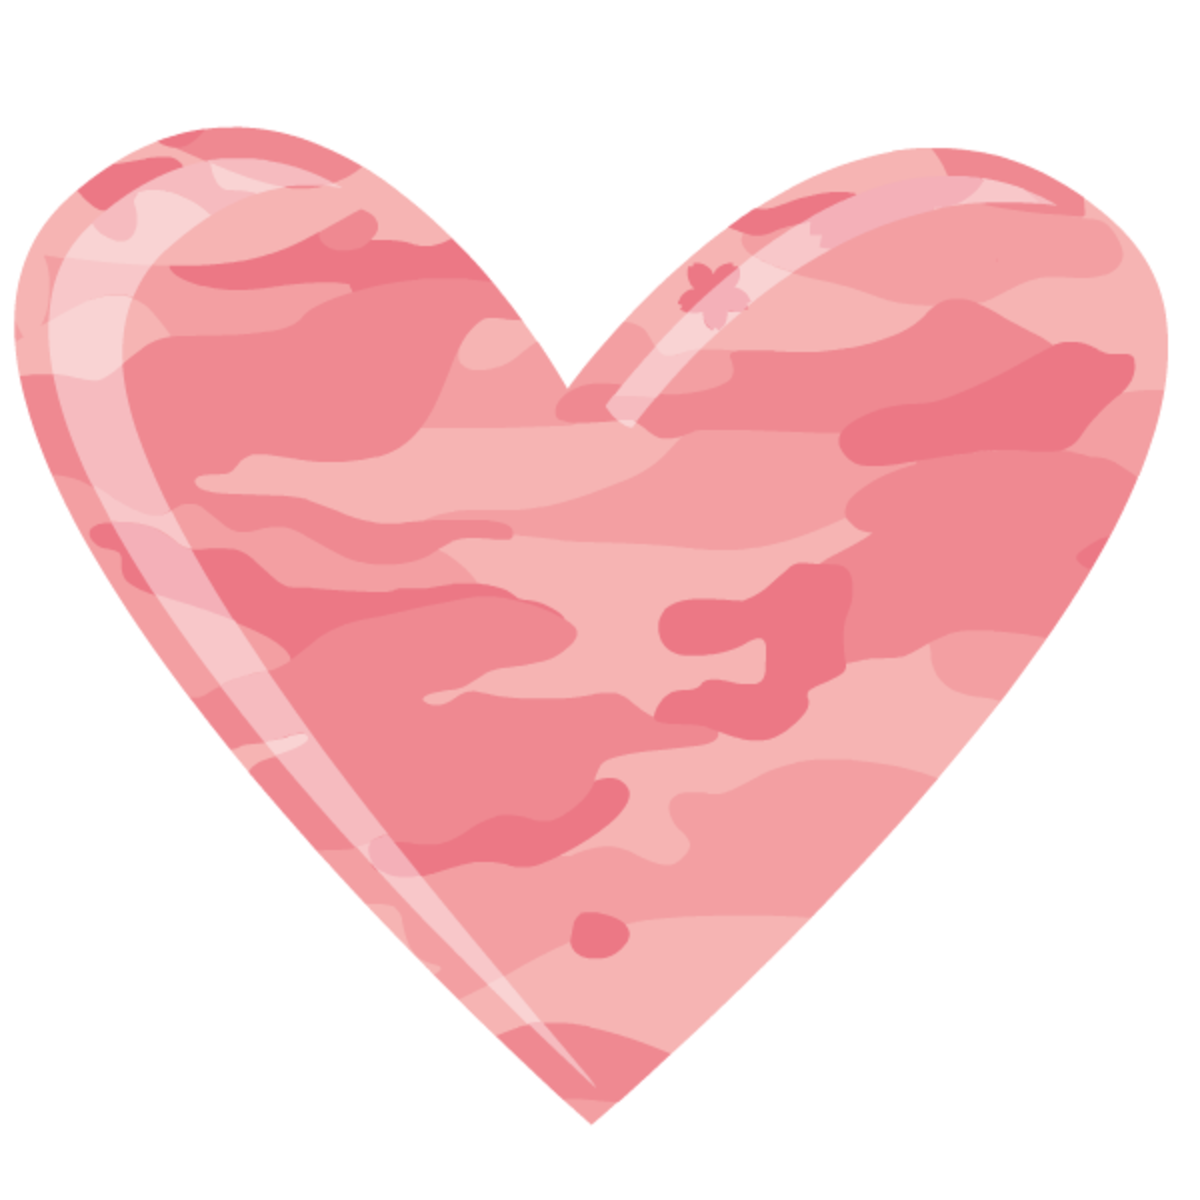 Camouflage patterned heart